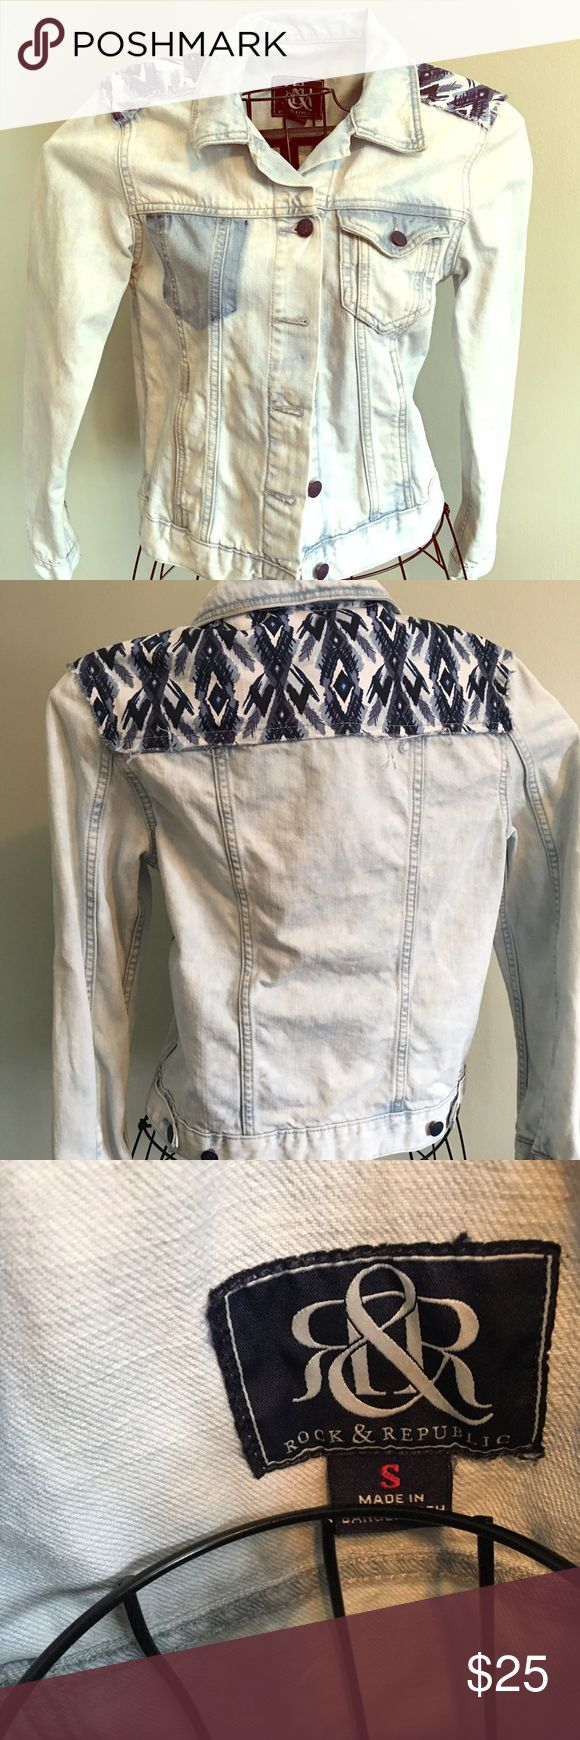 Denim jacket Rock and Republic EUC ladies denim jacket by Rock and Republic Rock & Republic Jackets & Coats Jean Jackets